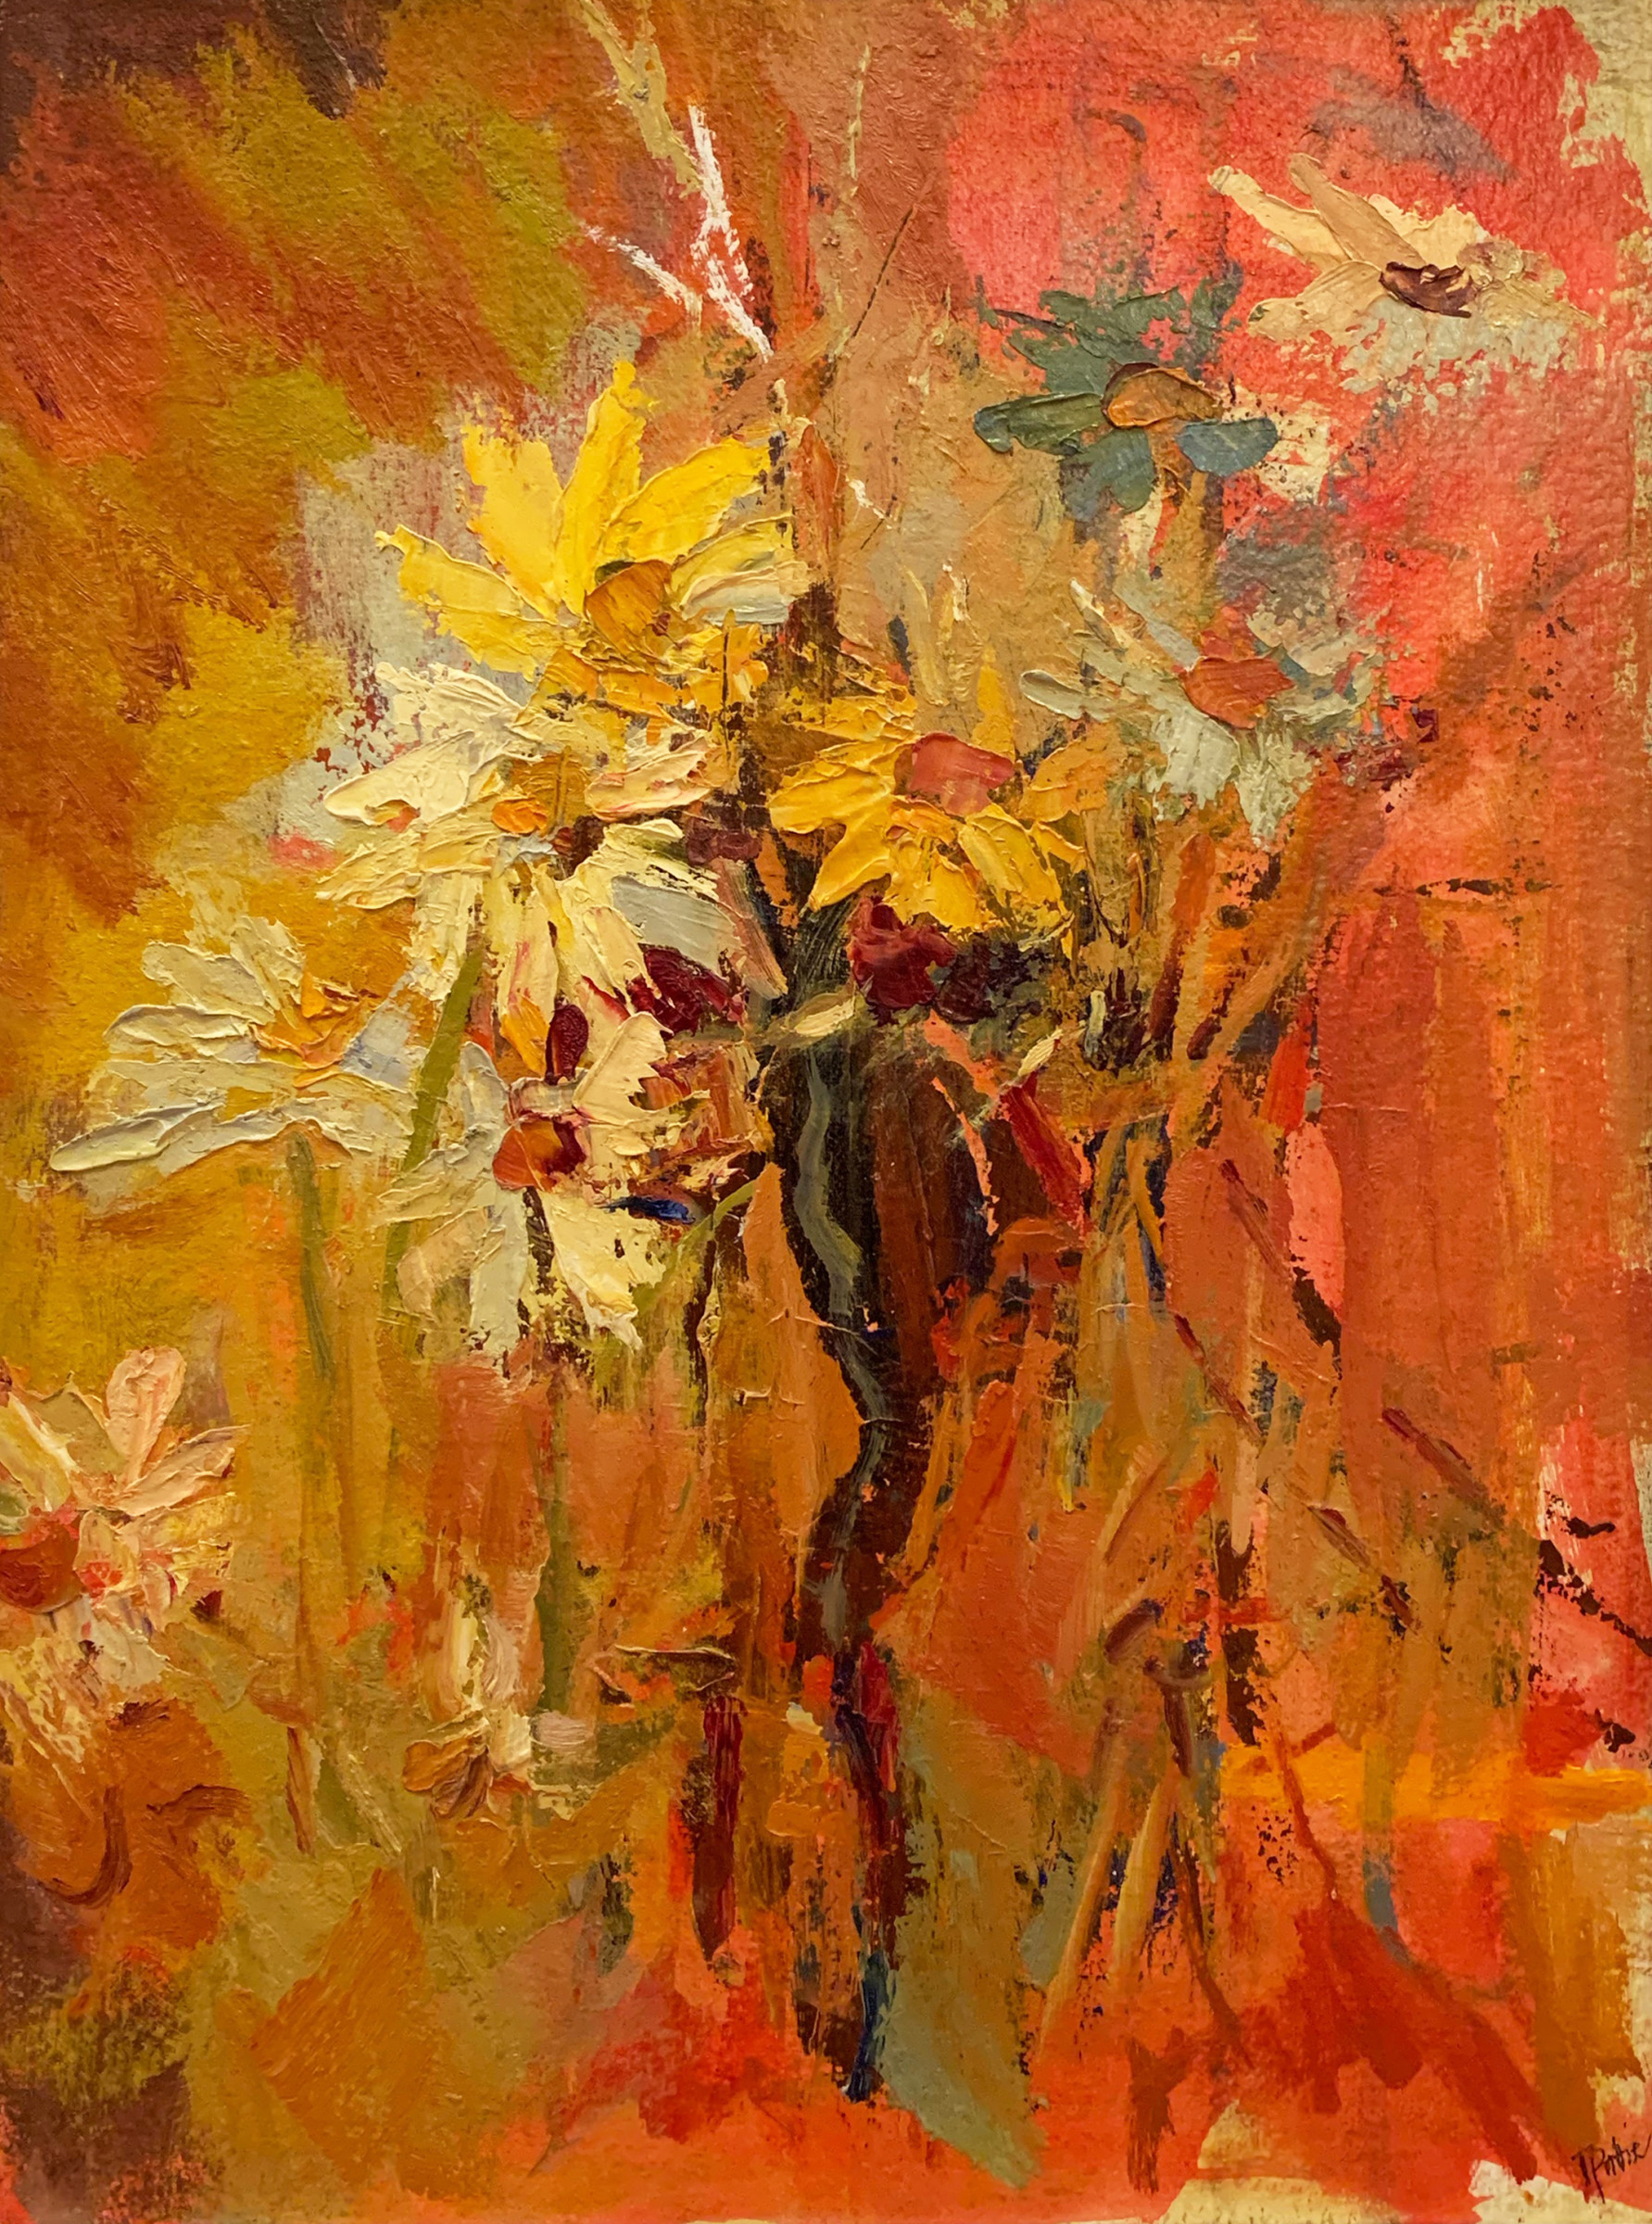 "<span class=""link fancybox-details-link""><a href=""/exhibitions/122/works/artworks3208/"">View Detail Page</a></span><div class=""artist""><strong>Tuëma Pattie</strong></div><div class=""title""><em>Summer Bouquet</em>, 2016</div><div class=""medium"">Oil on Khadi Paper</div><div class=""dimensions"">Framed:<br>88 x 67.5 cm<br>34 5/8 x 26 5/8 in.<br><br>Unframed:<br>75 x 55 cm<br>29 1/2 x 21 5/8 in.</div>"